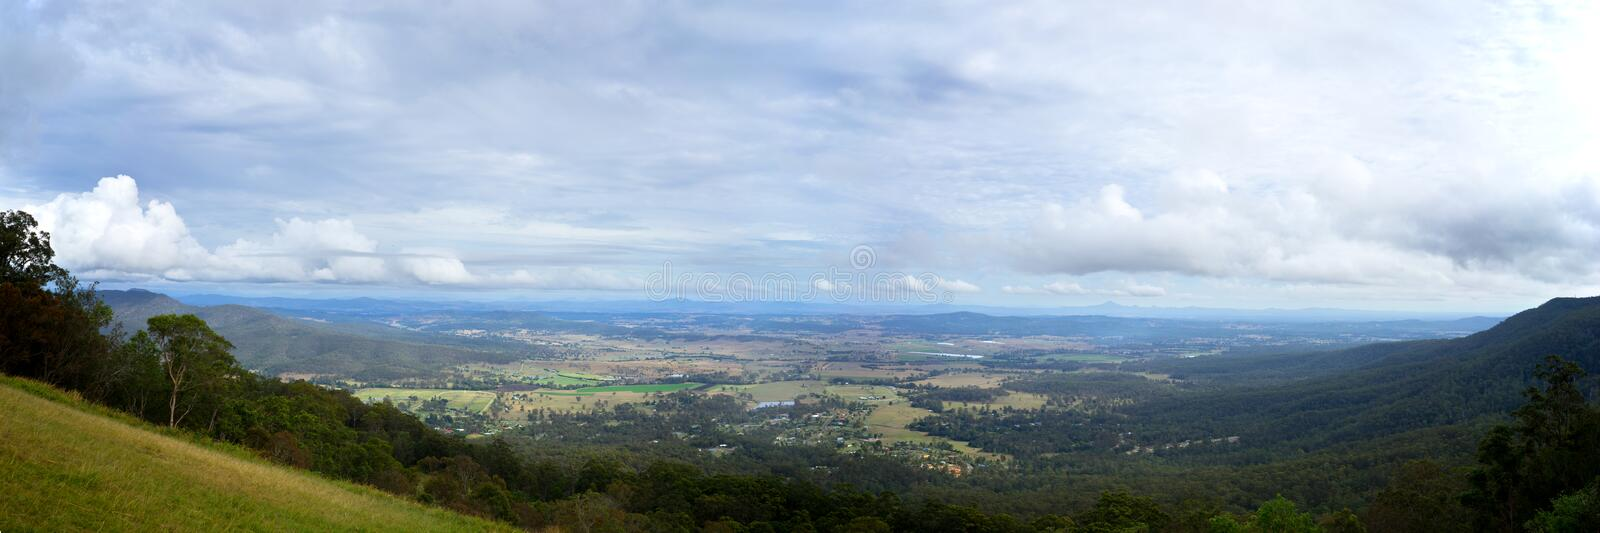 12x36 inch Panorama Canungra Queensland Australia. A 12x36 inch full size panoramic photos of Canungra taken from Mount Tamborine in Queensland in Australia royalty free stock photo